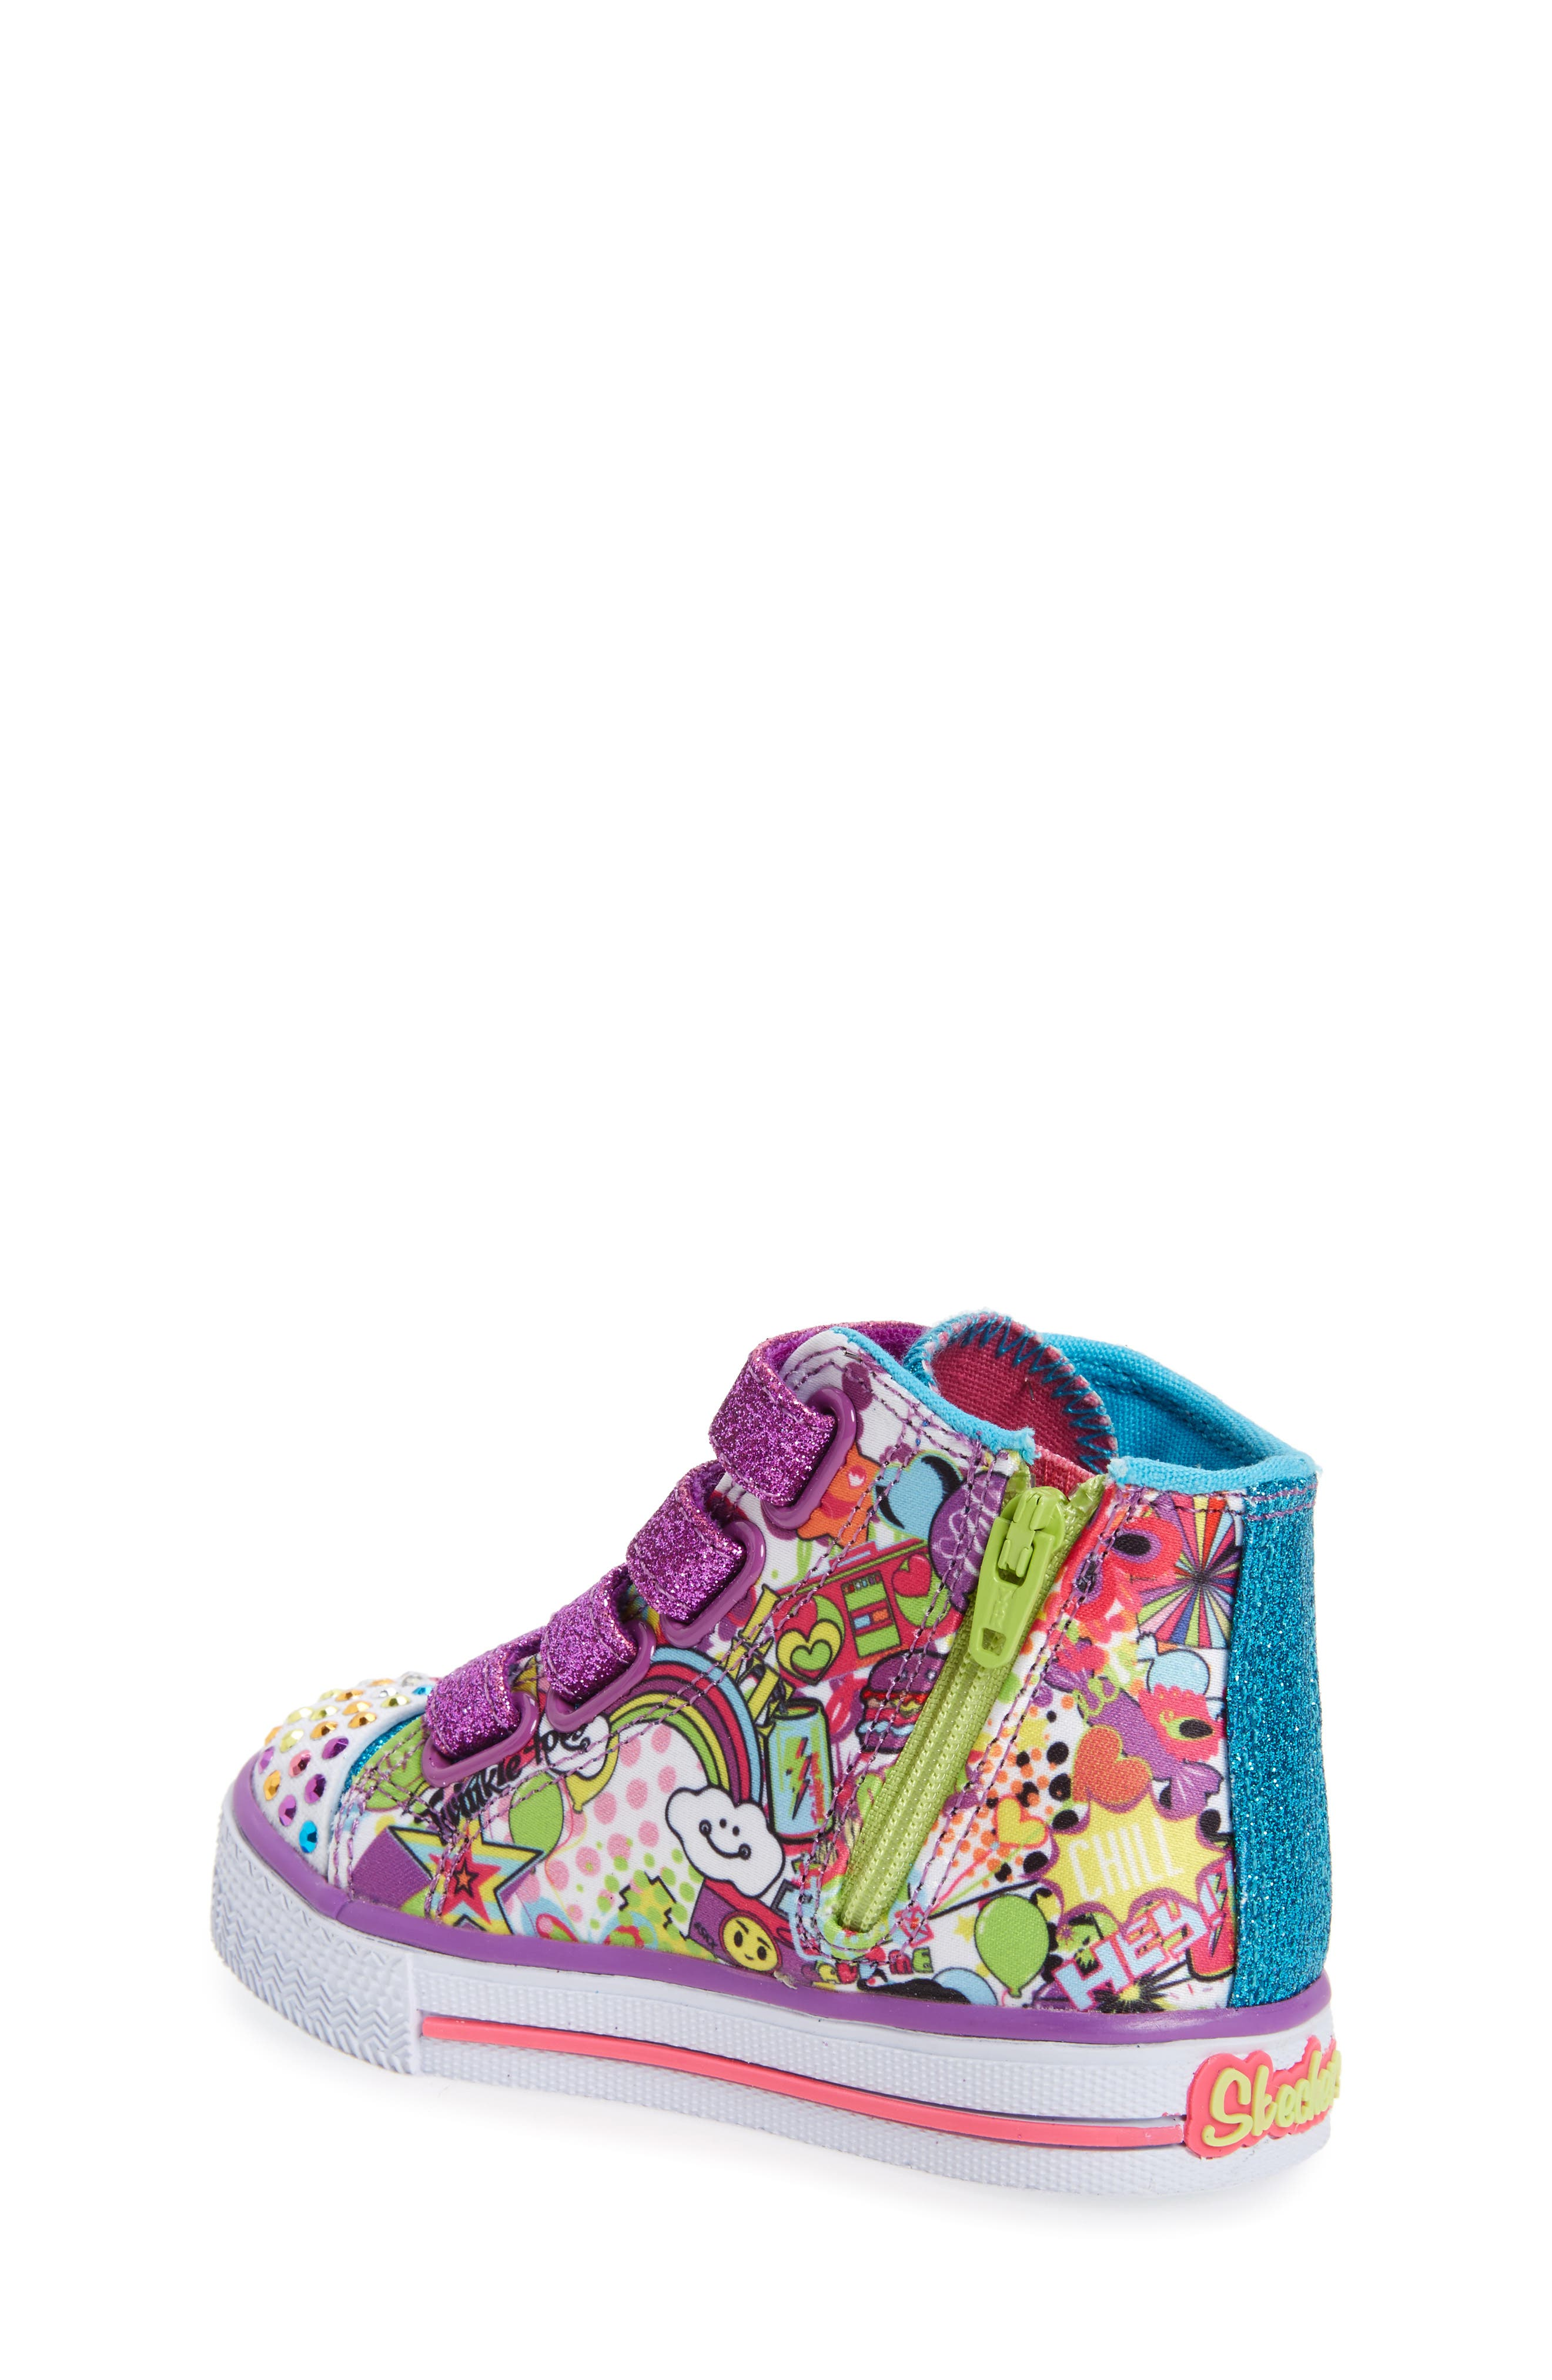 Twinkle Toes Shuffles Light-Up Sneaker,                             Alternate thumbnail 2, color,                             484